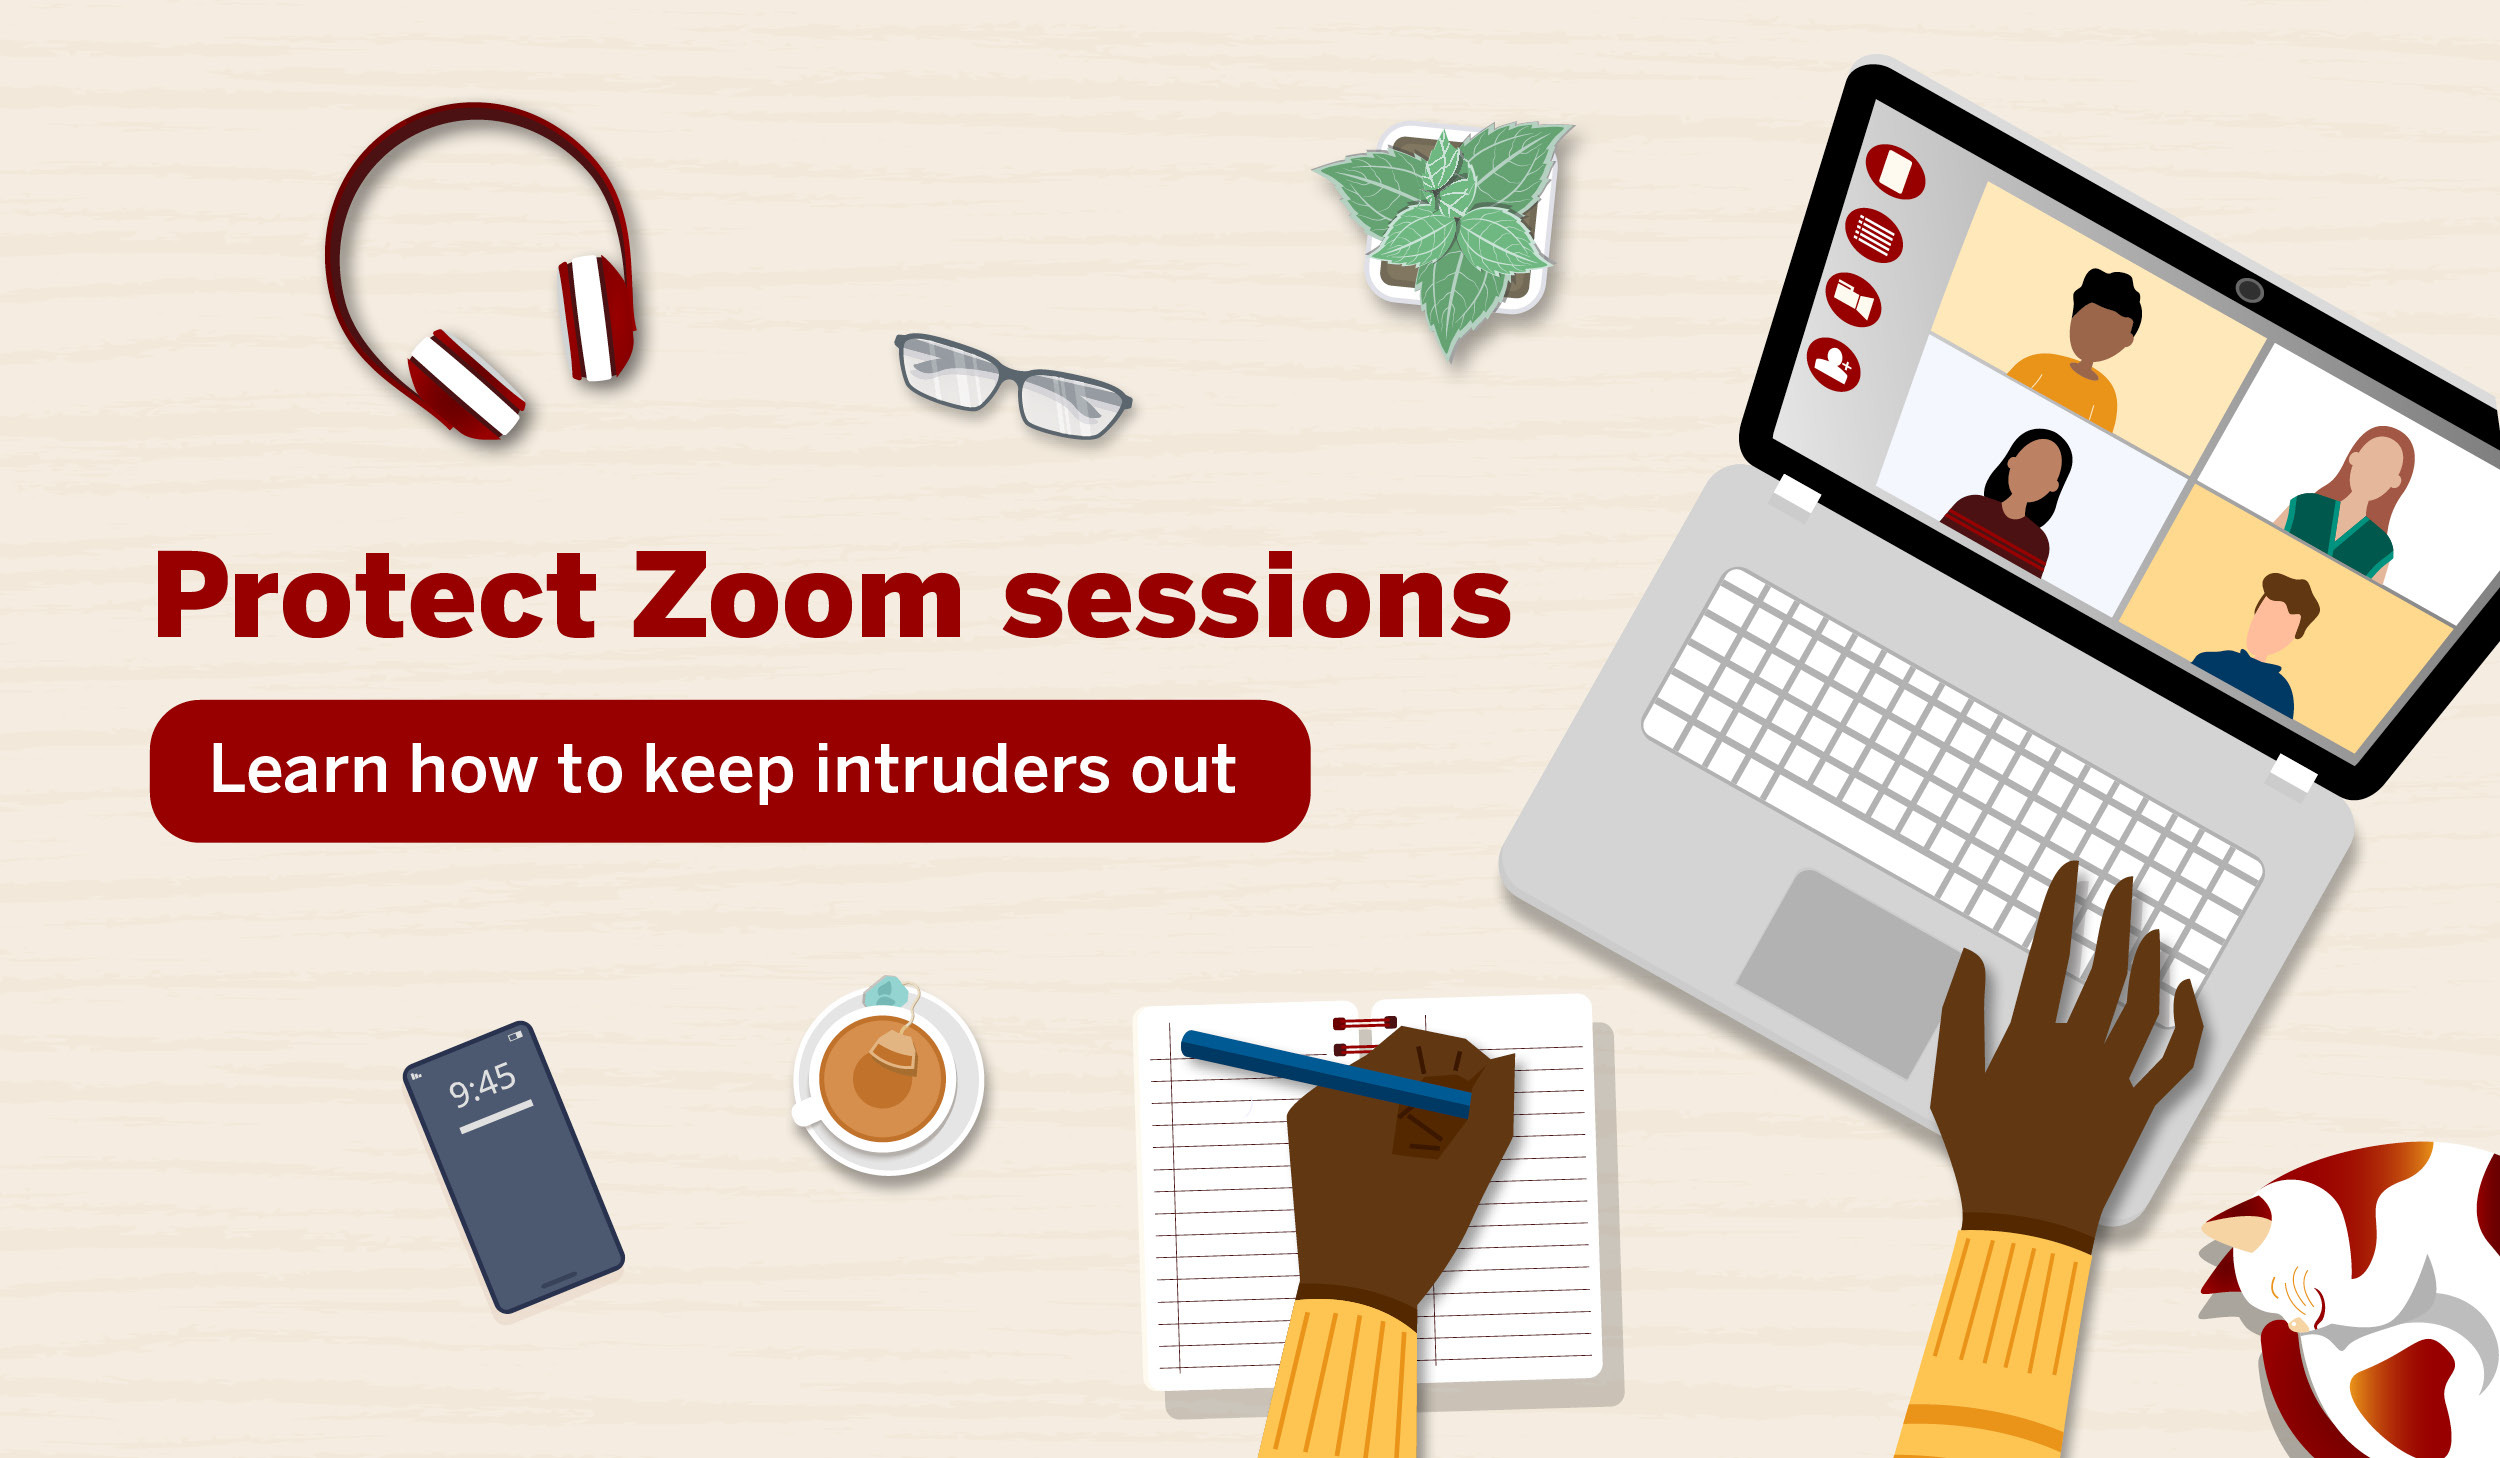 Protect Zoom sessions